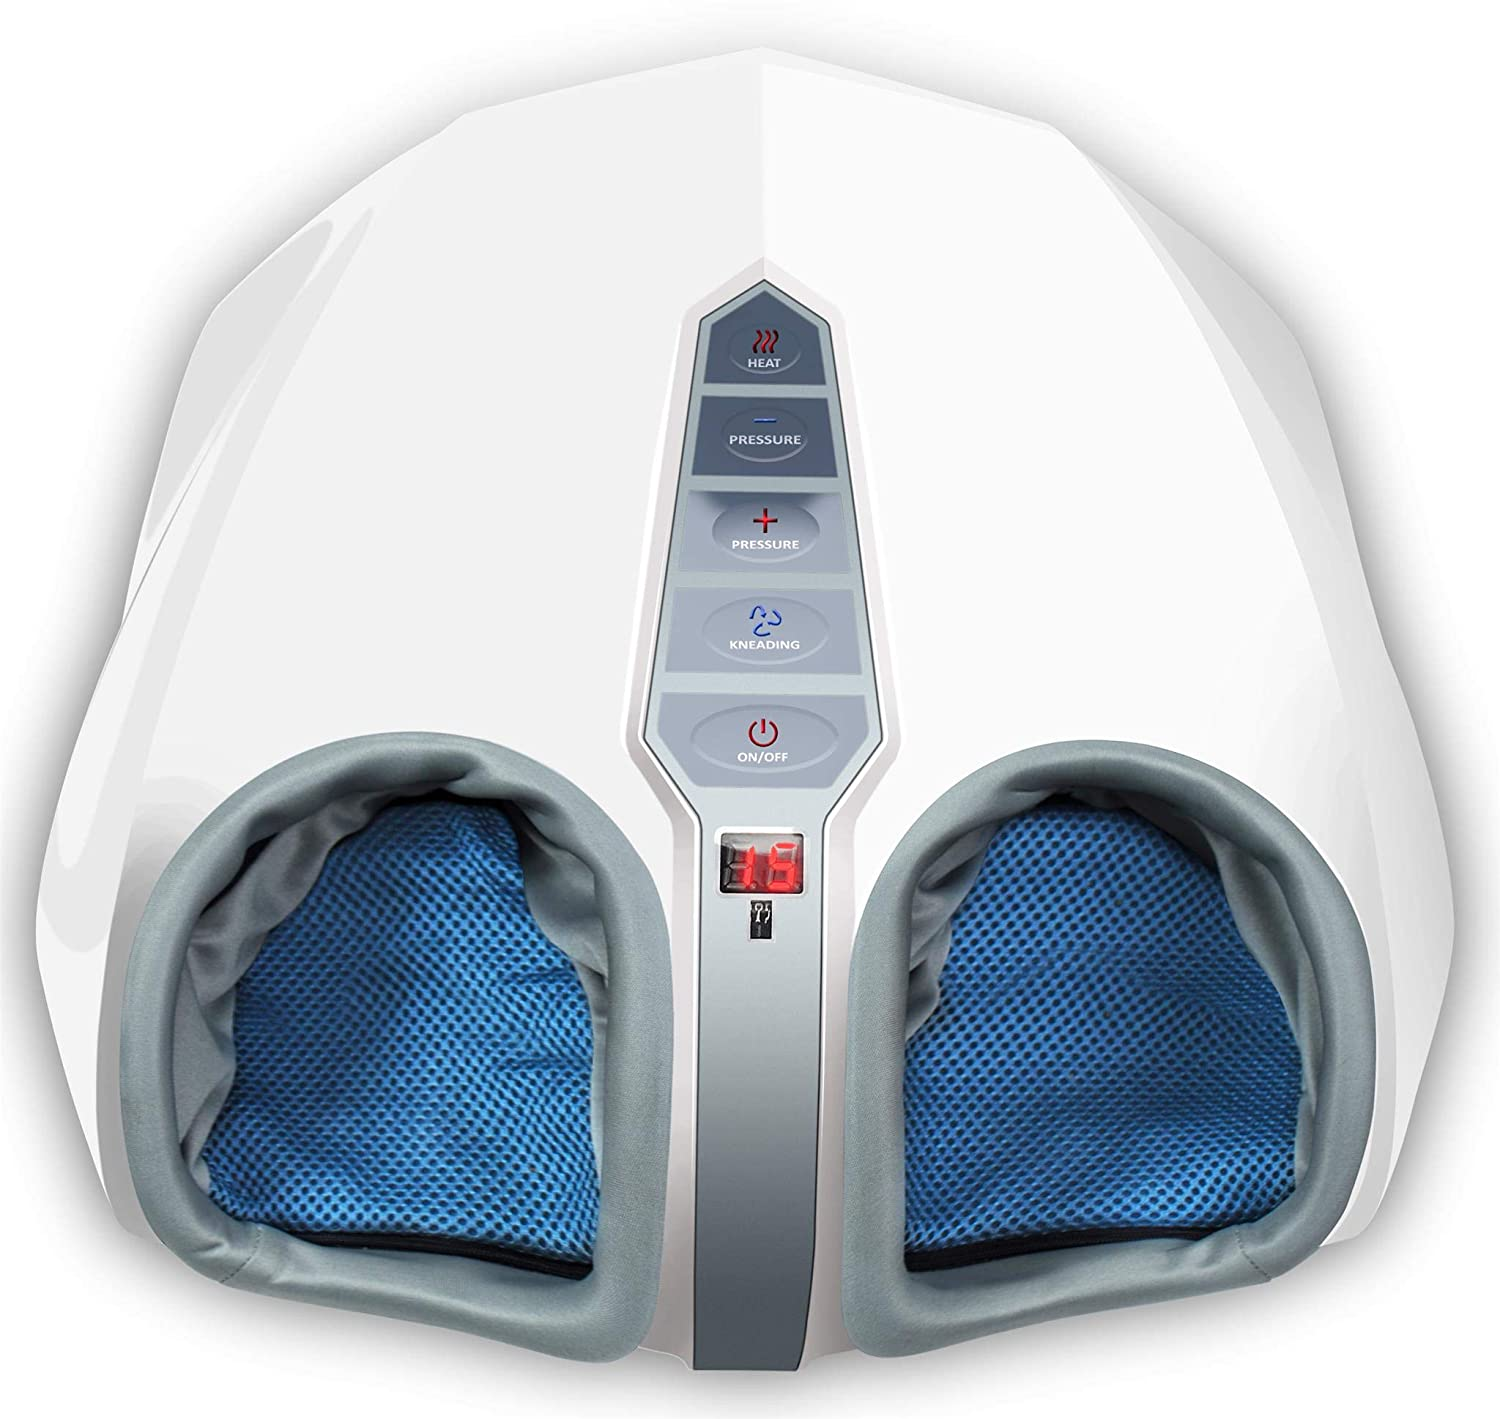 Miko Foot Massager with Multi-Level Settings, Shiatsu Deep Kneading, and Switchable Heat Function White